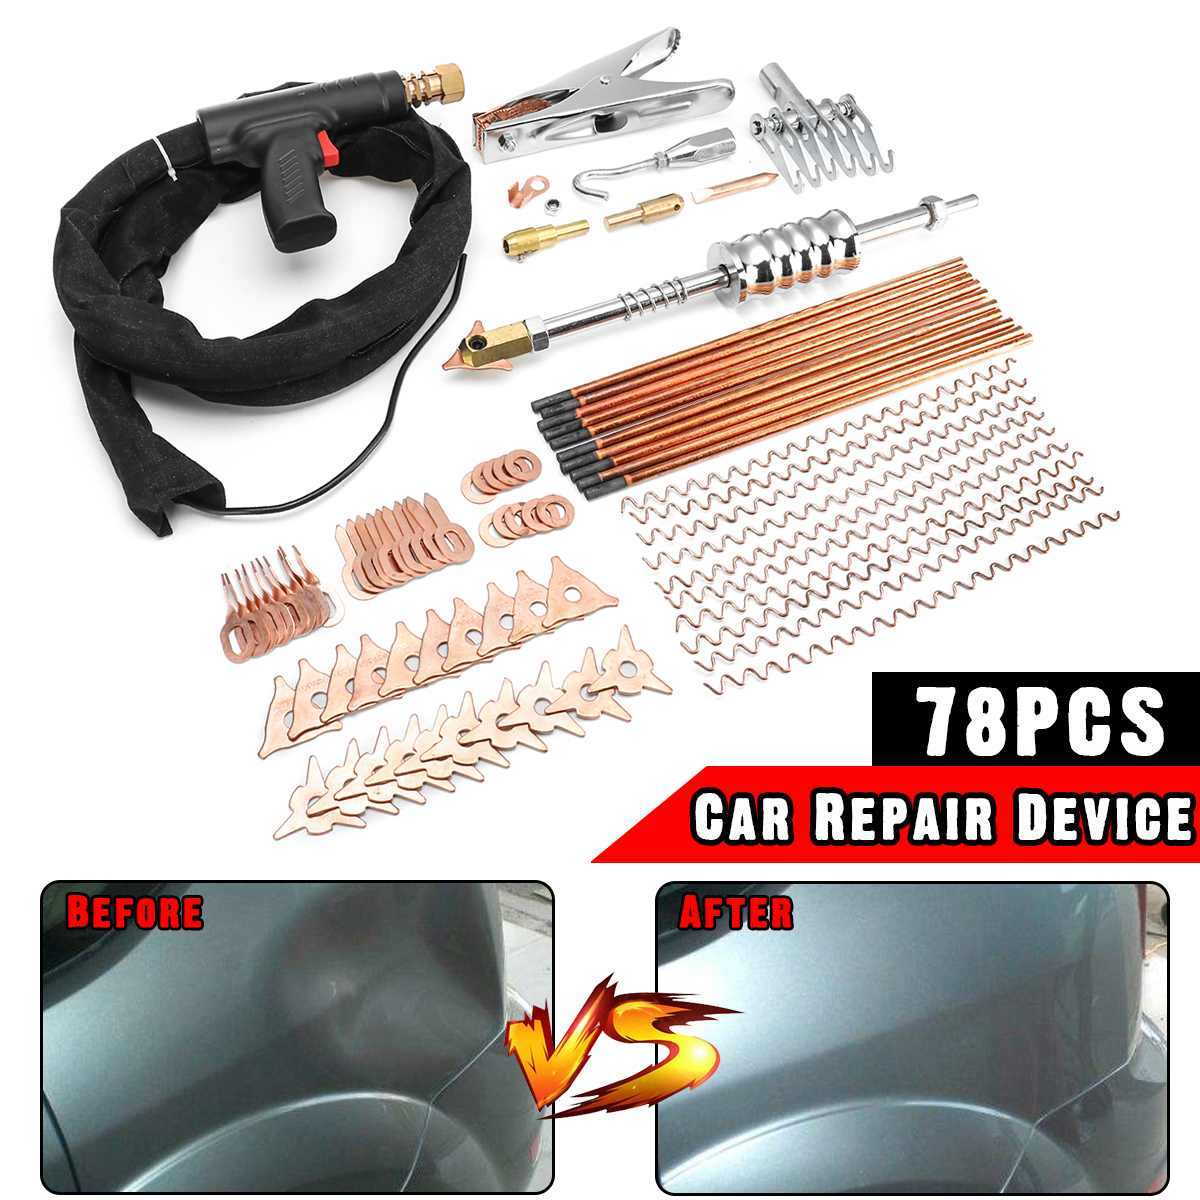 78pcs Car Repair Dent Puller Welder Kit Car Body Spot Dent Removal Device Stud Welding G u n Tool with 195cm Cable